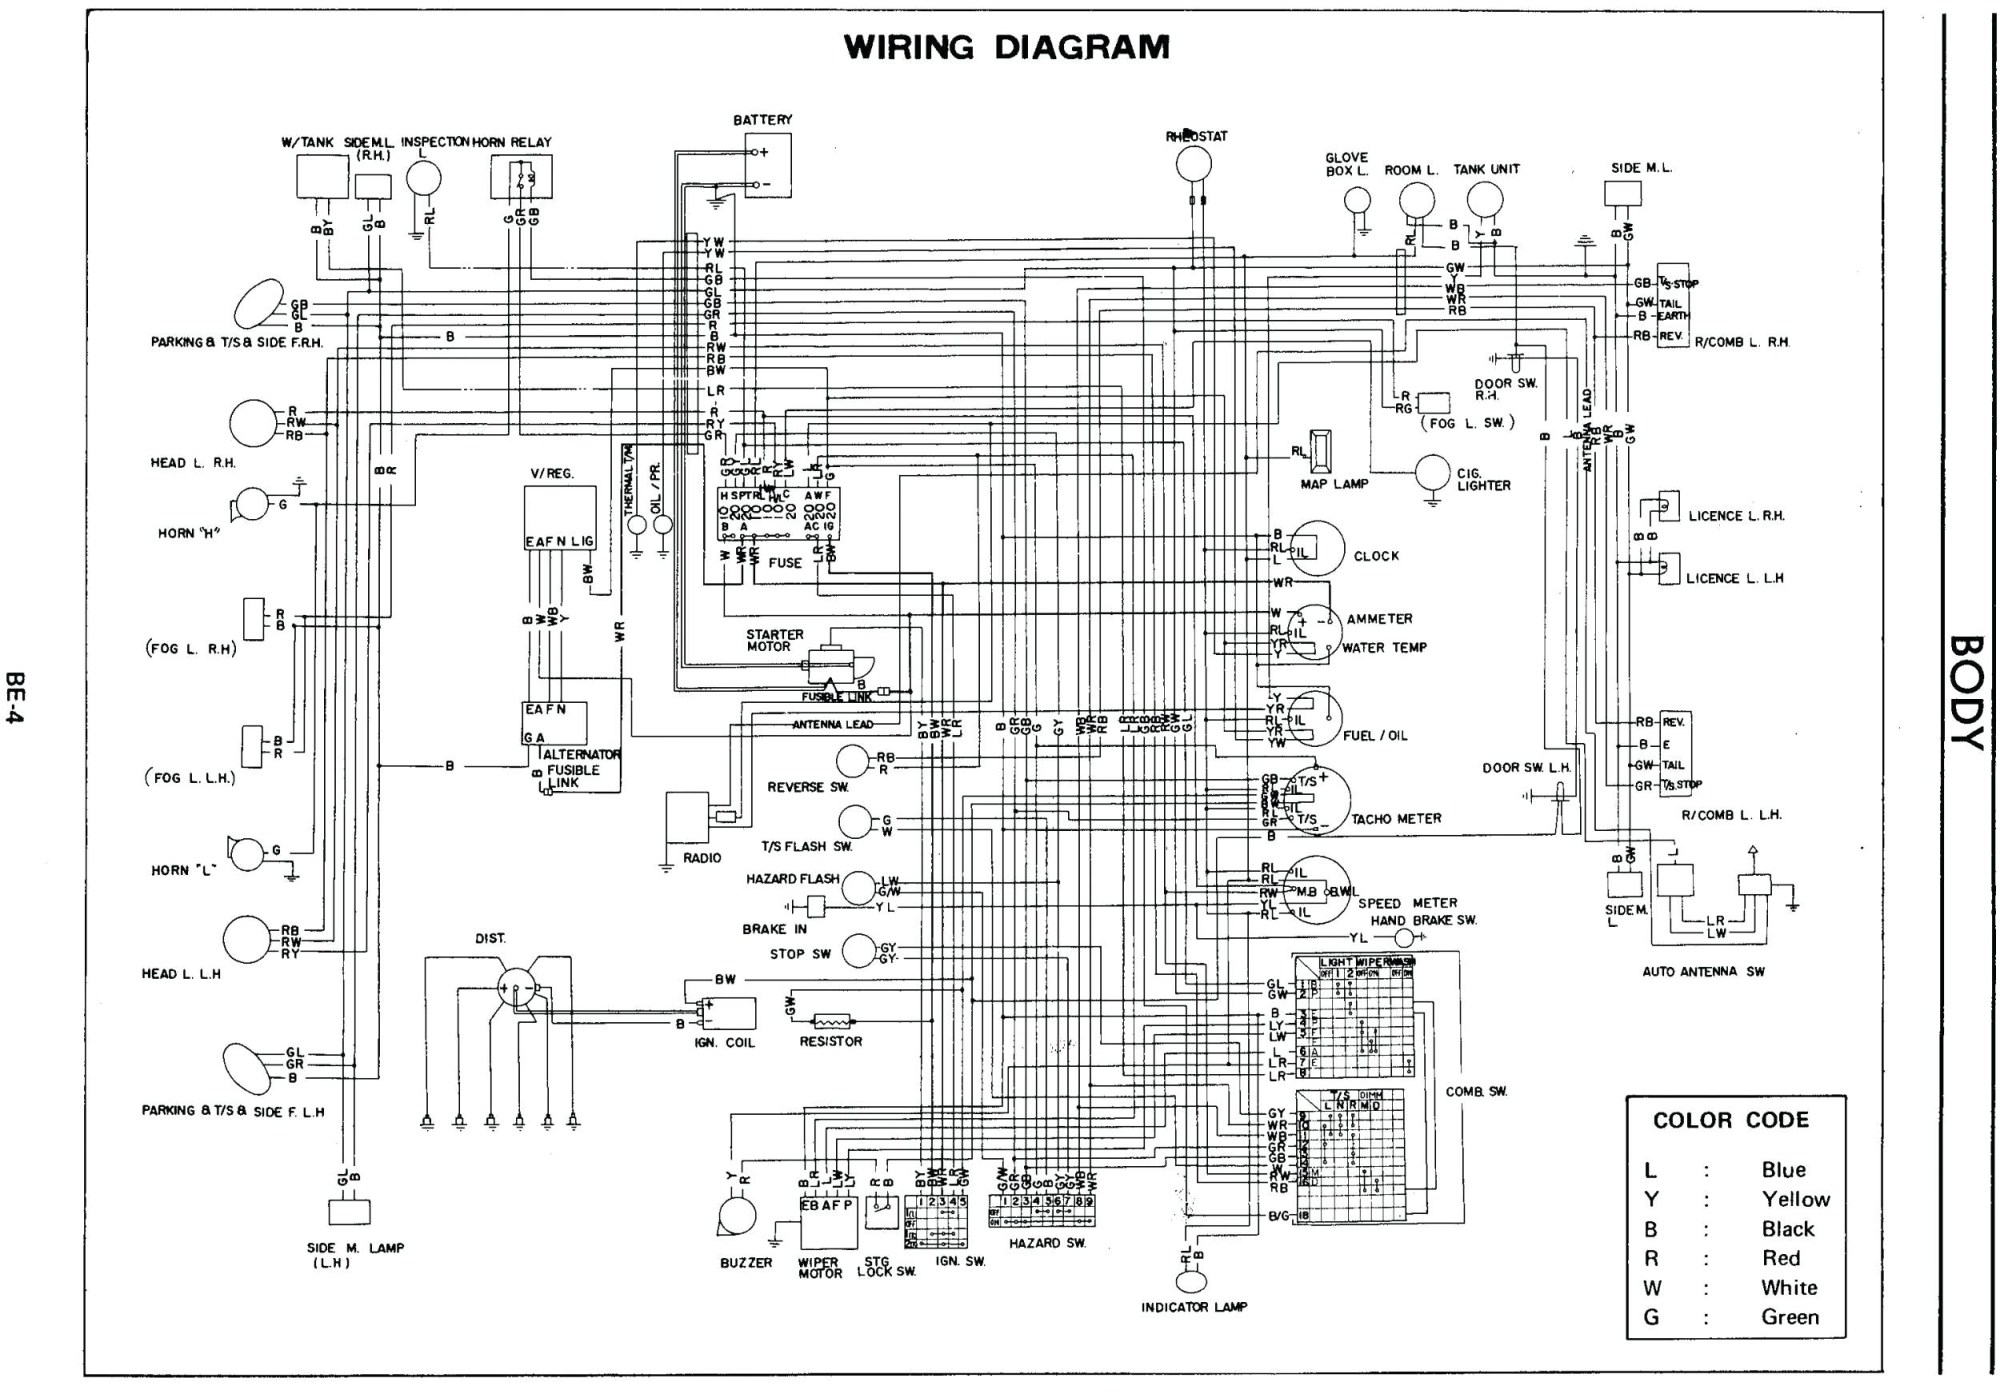 hight resolution of 1968 datsun wiring diagram wiring diagram world datsun 2000 wiring diagram